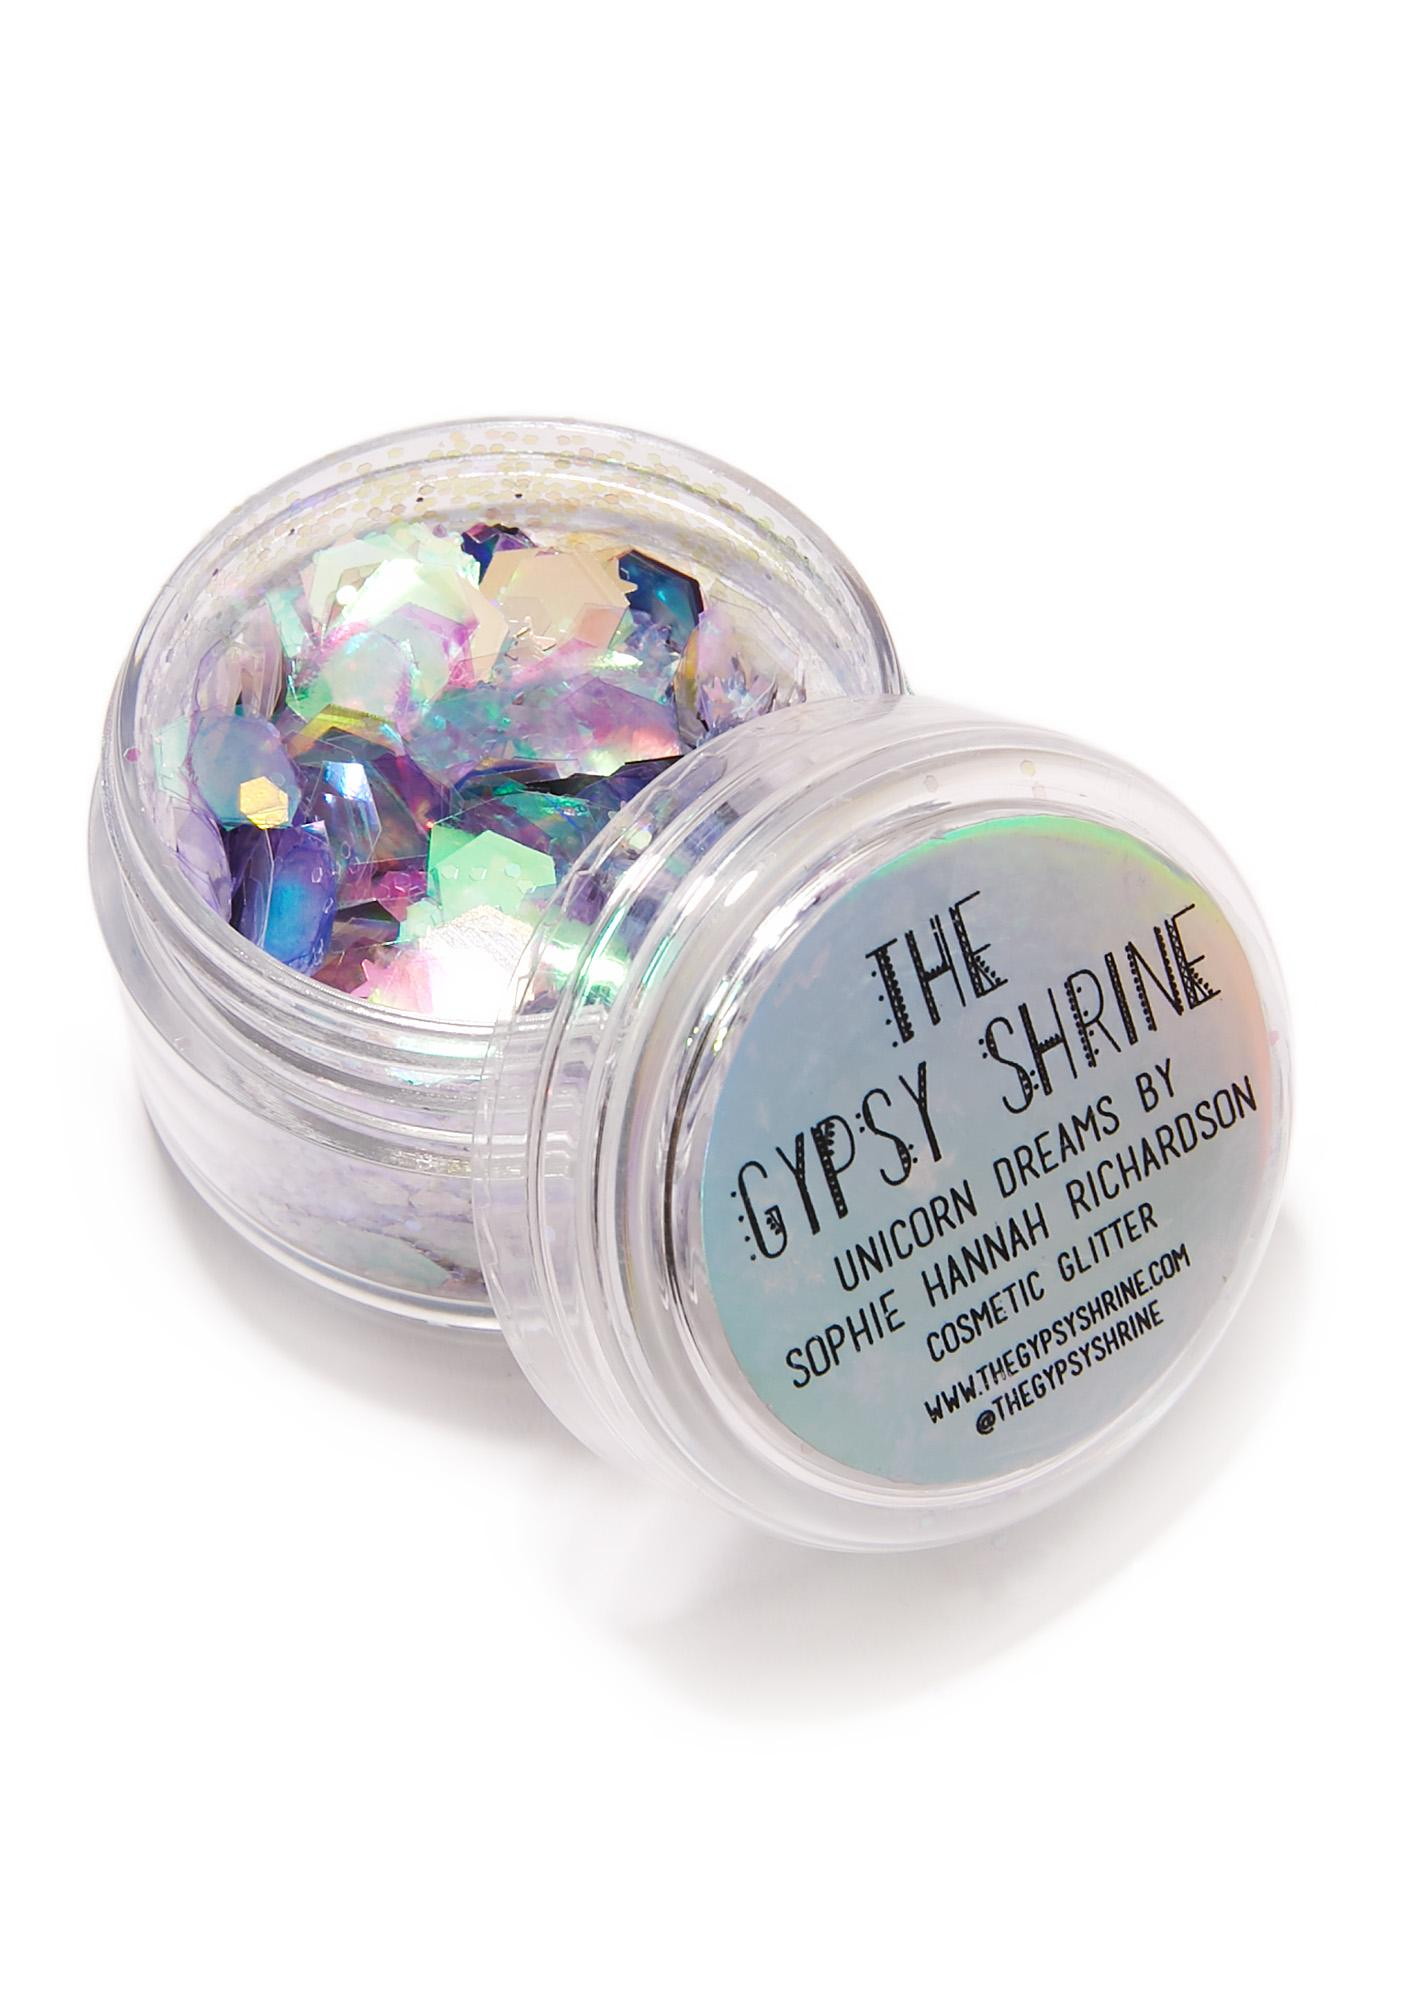 The Gypsy Shrine Unicorn Dreams Iridescent Face Glitter